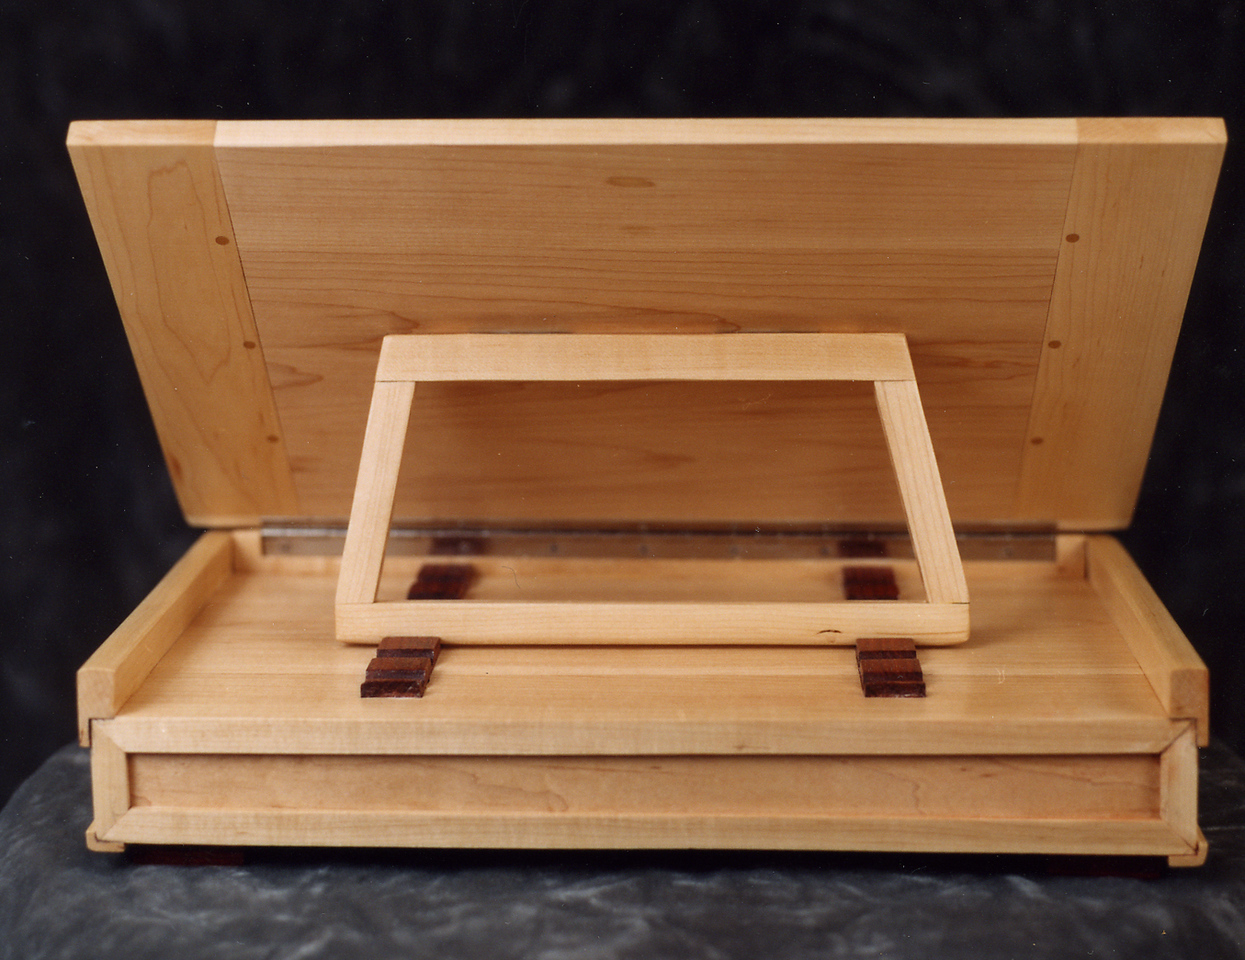 Music Writing Desk - Back view<br /> Solid Maple<br /> Cocobolo Handles and Adjustment Blocks<br /> Adjusts to writing angles